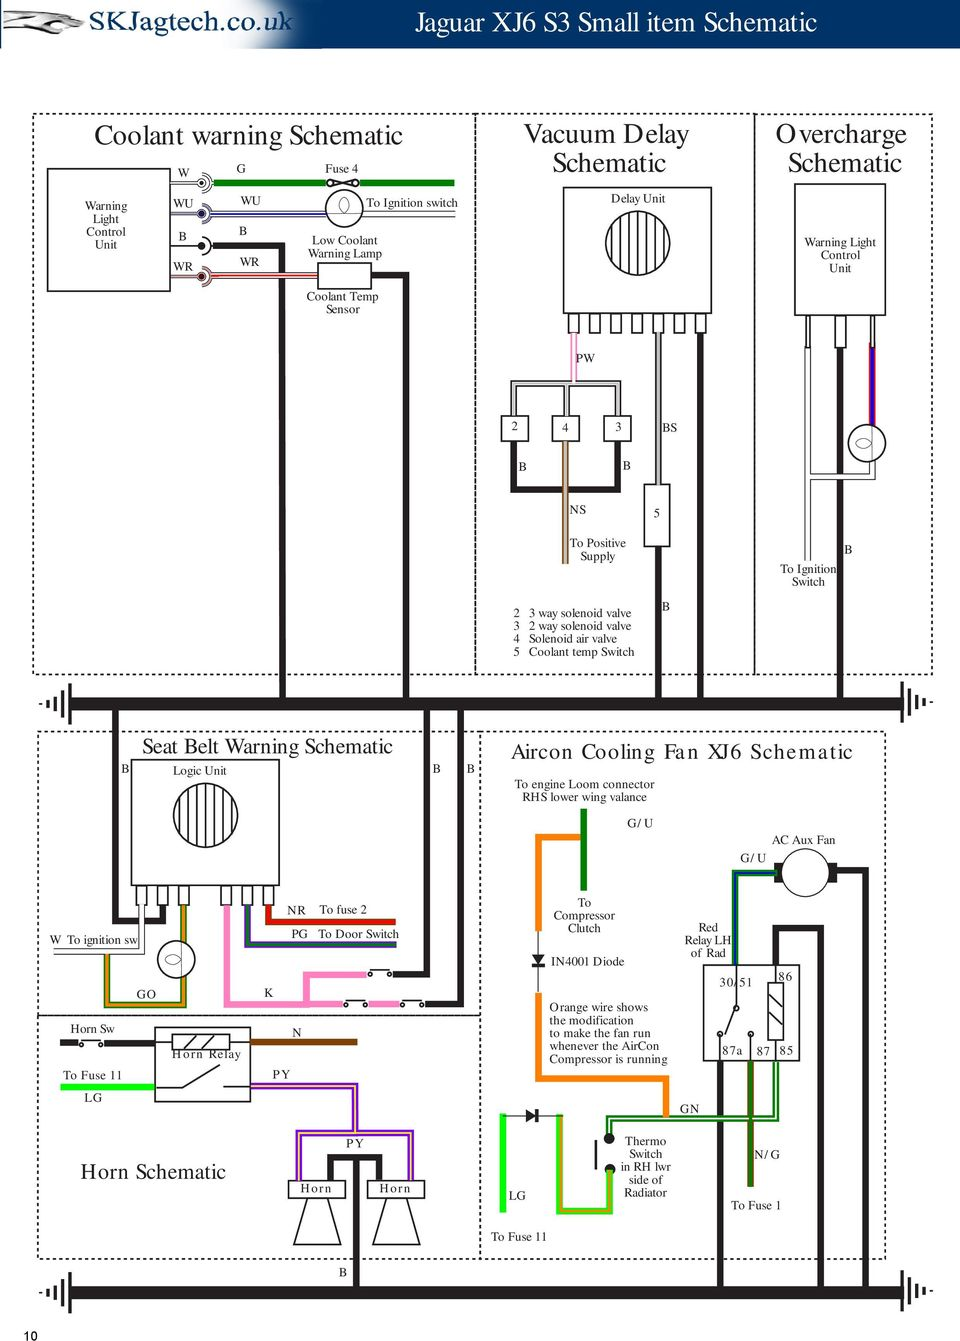 Jaguar Xj6 Series 3 Schematic Drawings Pdf 1979 Gmc 4500 Electrical Wiring Diagram Warning Logic Unit Aircon Cooling Fan To Engine Loom Connector Rhs Lower Wing